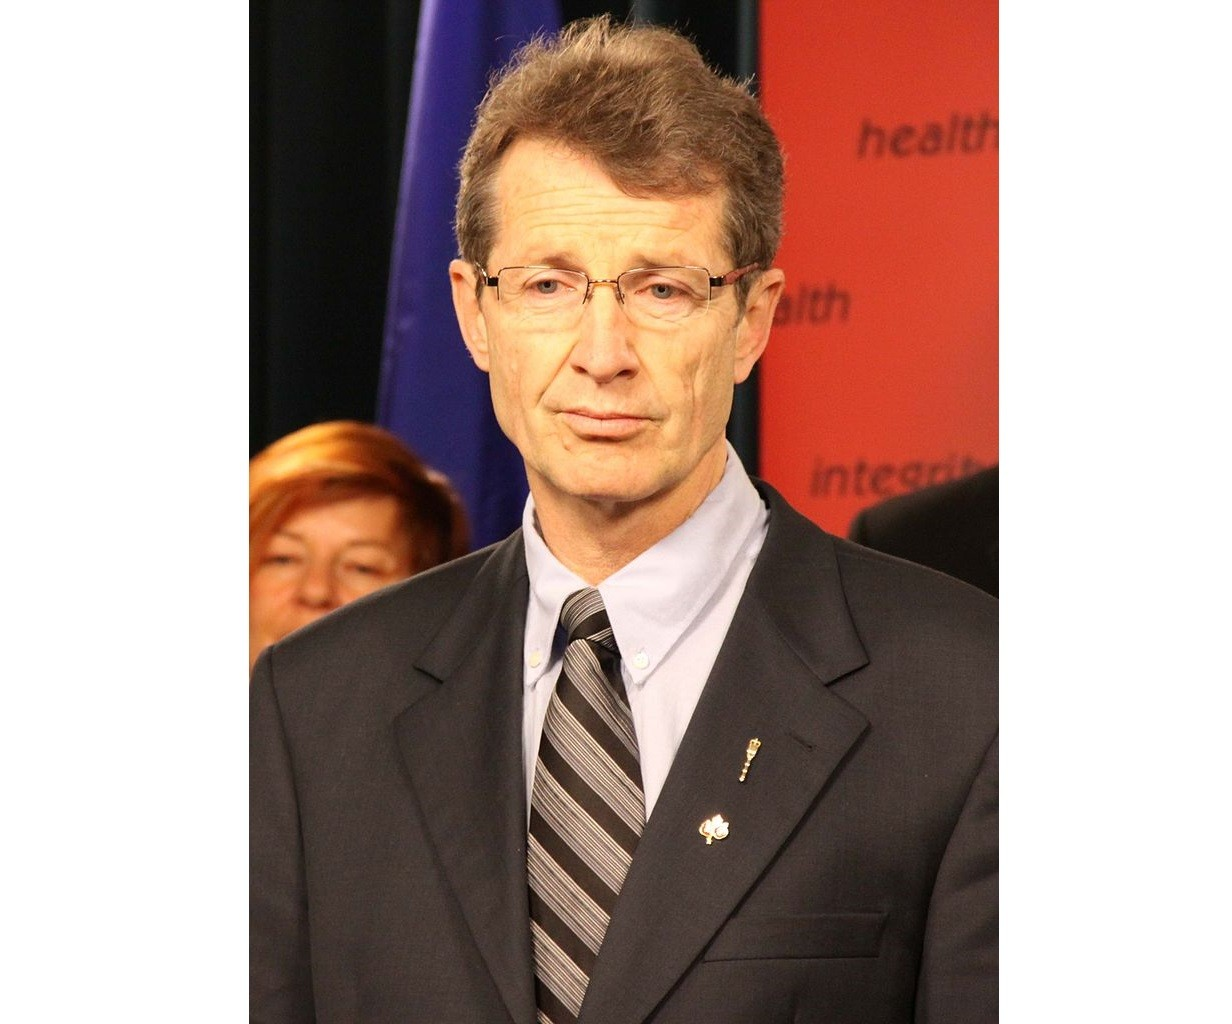 Alberta Liberal leader David Swann. Photo by Dave Cournoyer via Wikipedia.